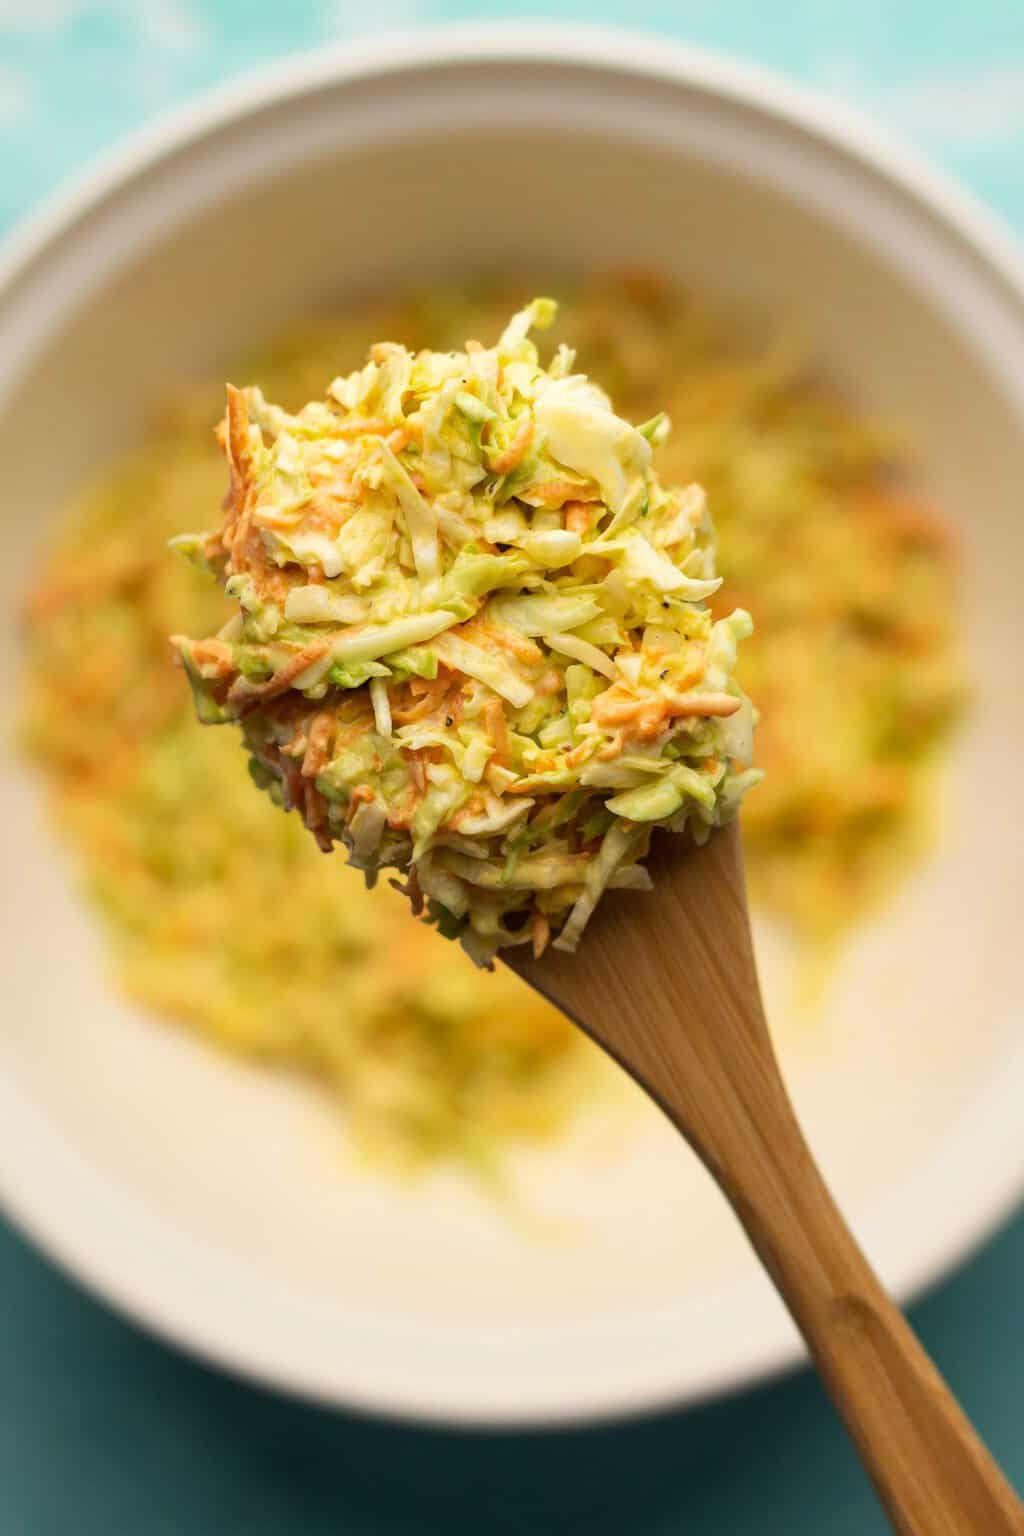 A spoonful of vegan coleslaw.